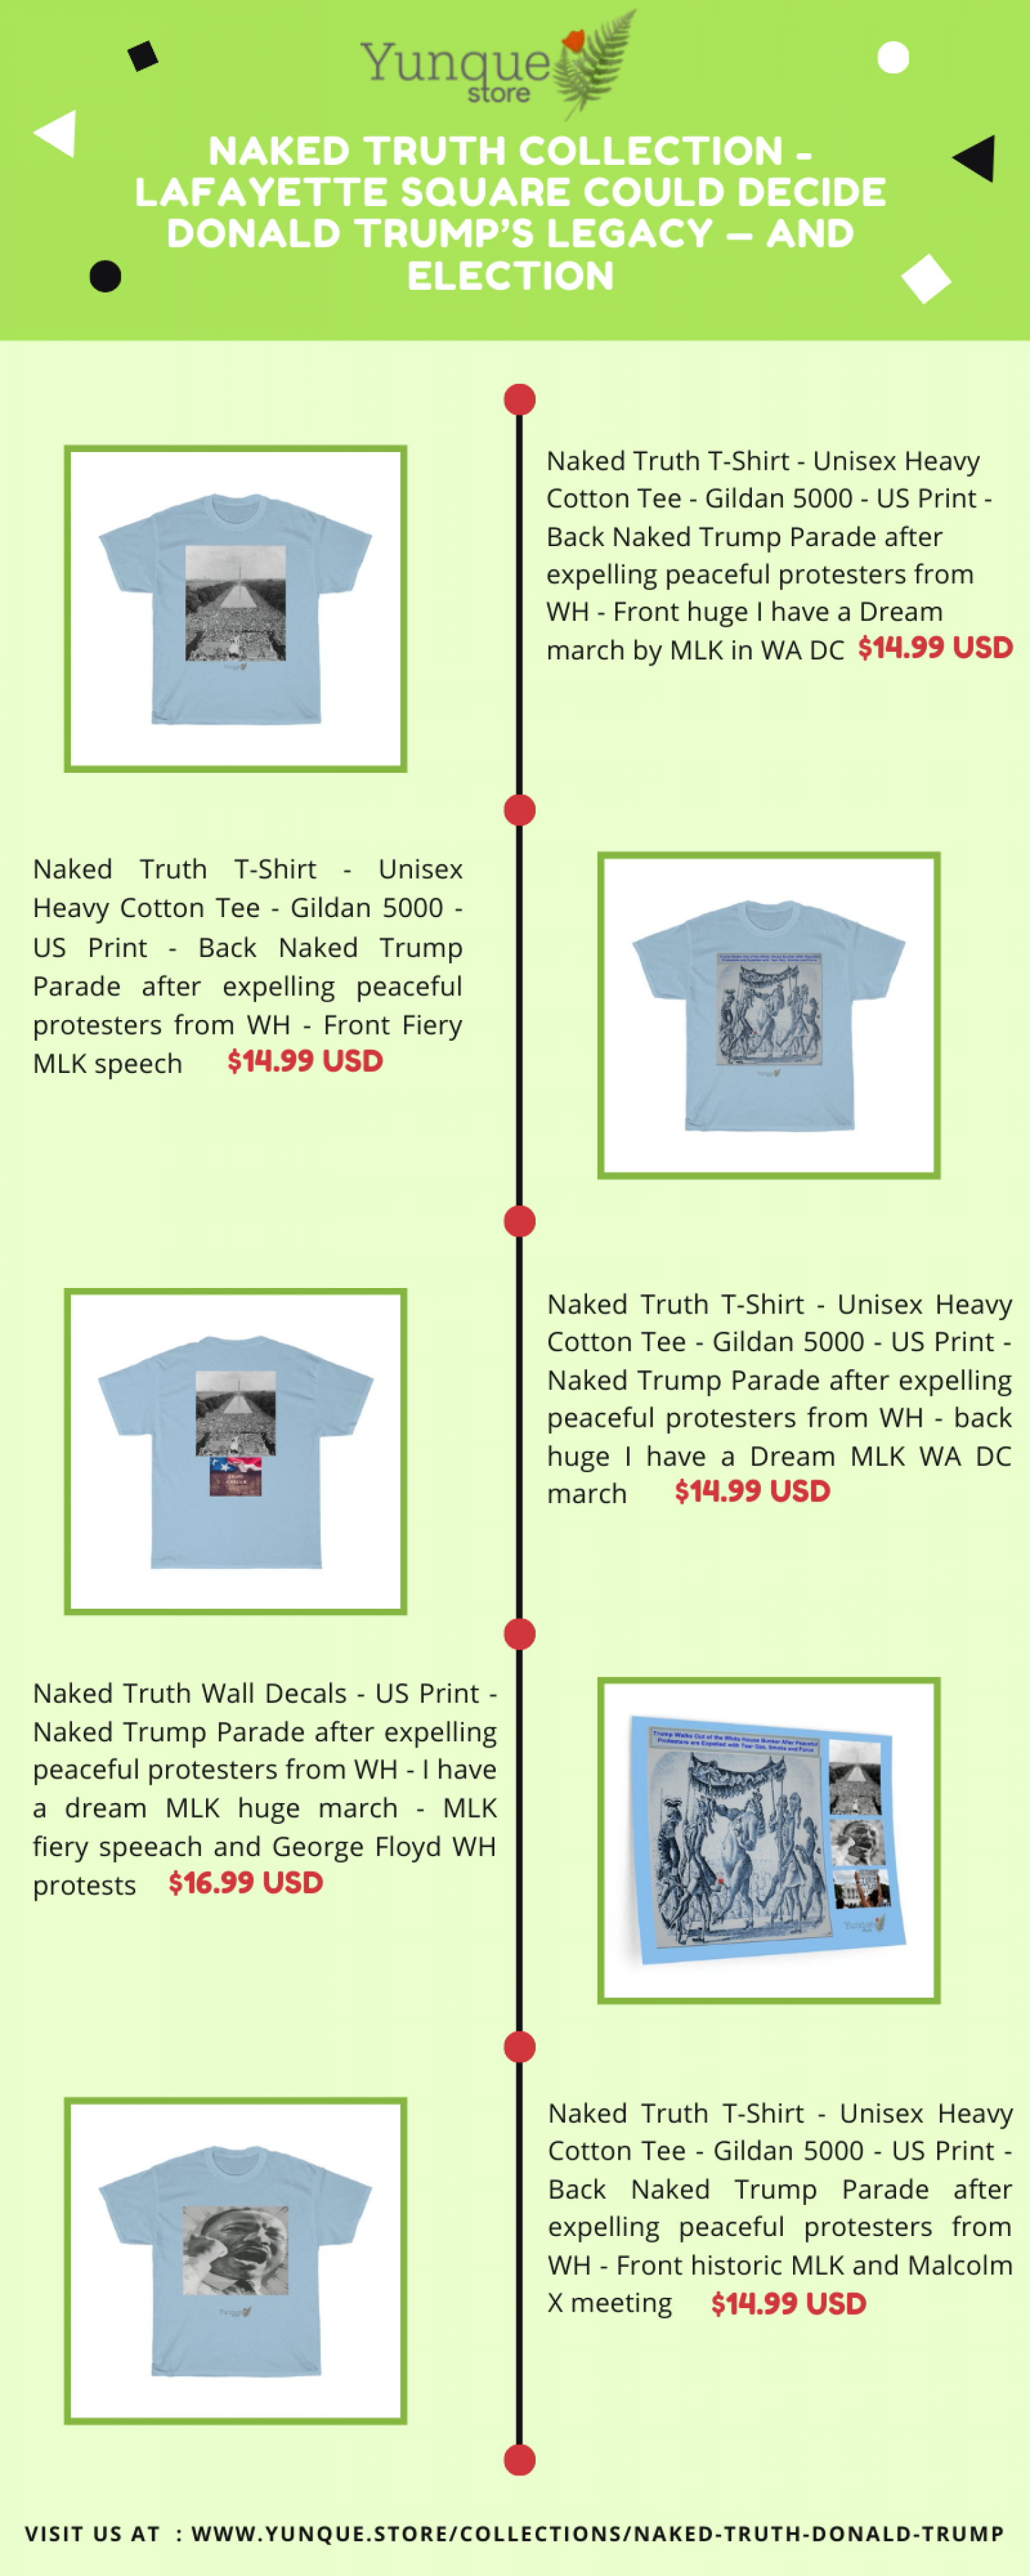 Naked Truth Collection - Lafayette Square could decide Donald Trump's legacy Infographic